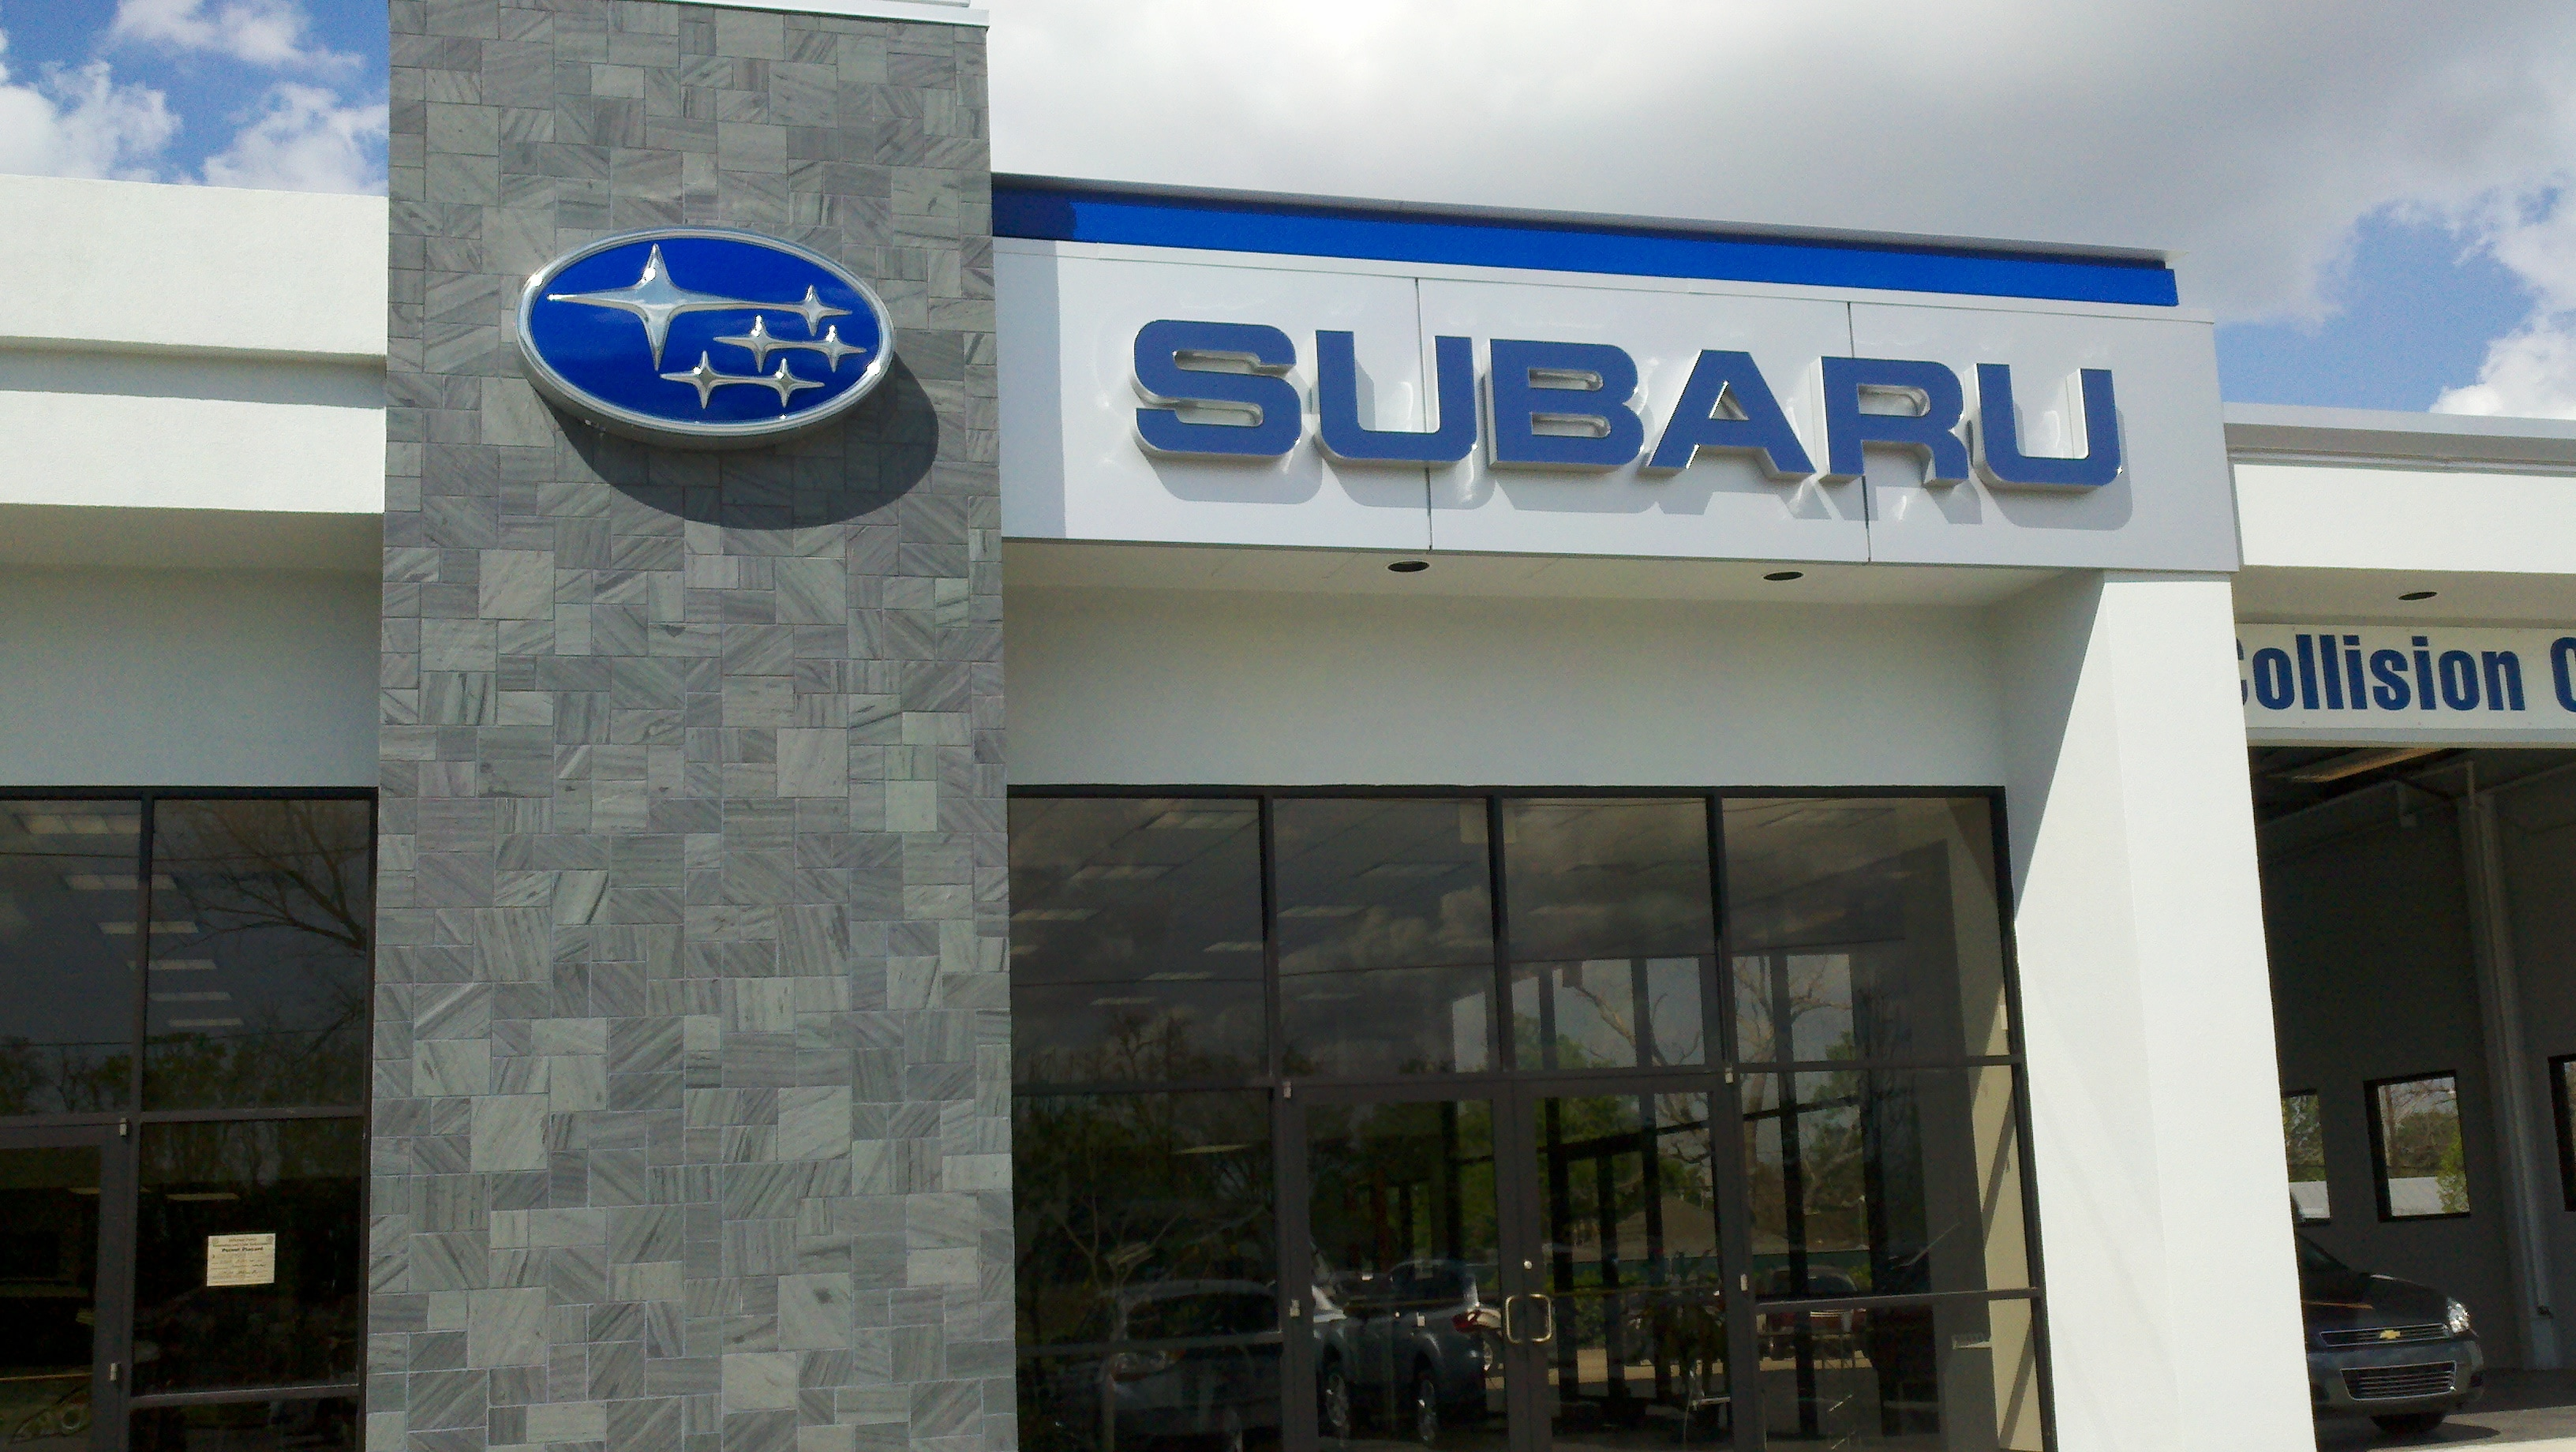 about bryan subaru new orleans la area subaru dealer. Black Bedroom Furniture Sets. Home Design Ideas